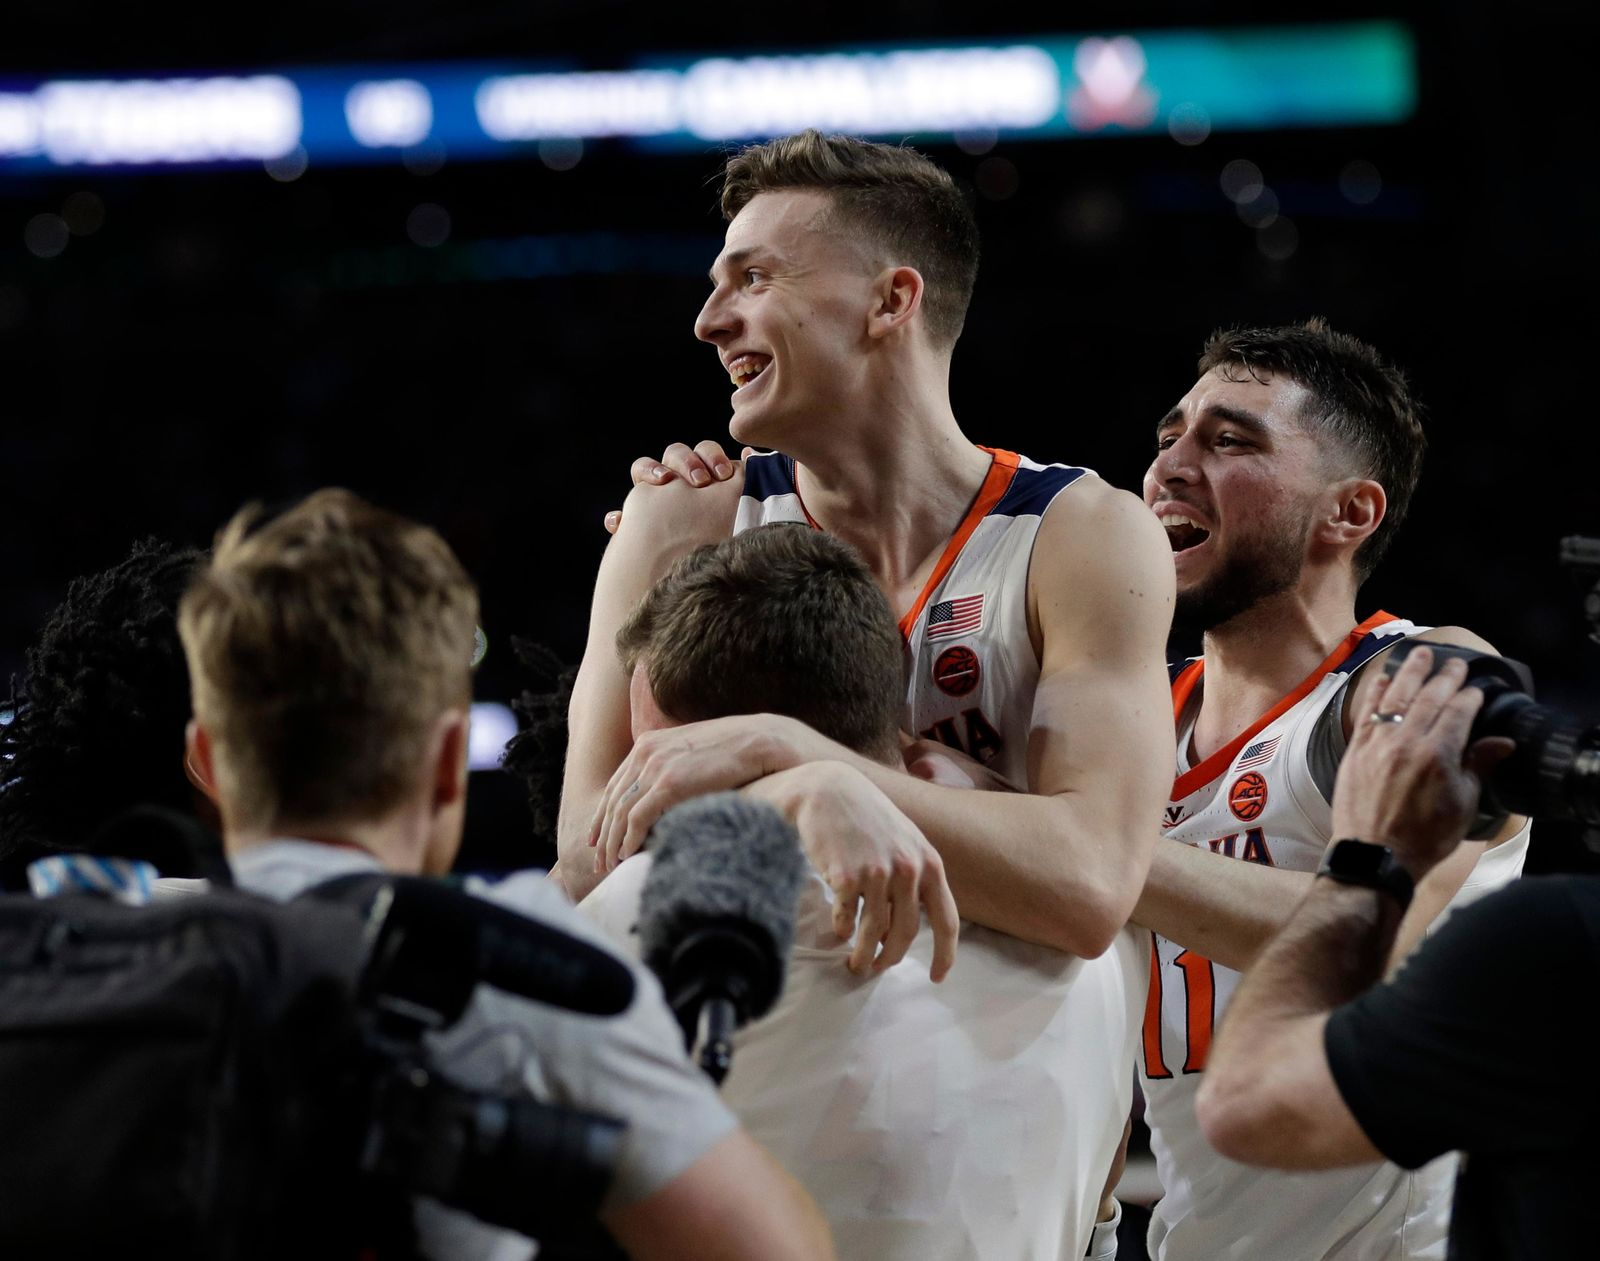 Virginia's Kyle Guy celebrates after defeating Auburn 63-62 in the semifinals of the Final Four NCAA college basketball tournament, Saturday, April 6, 2019, in Minneapolis. (AP Photo/David J. Phillip)